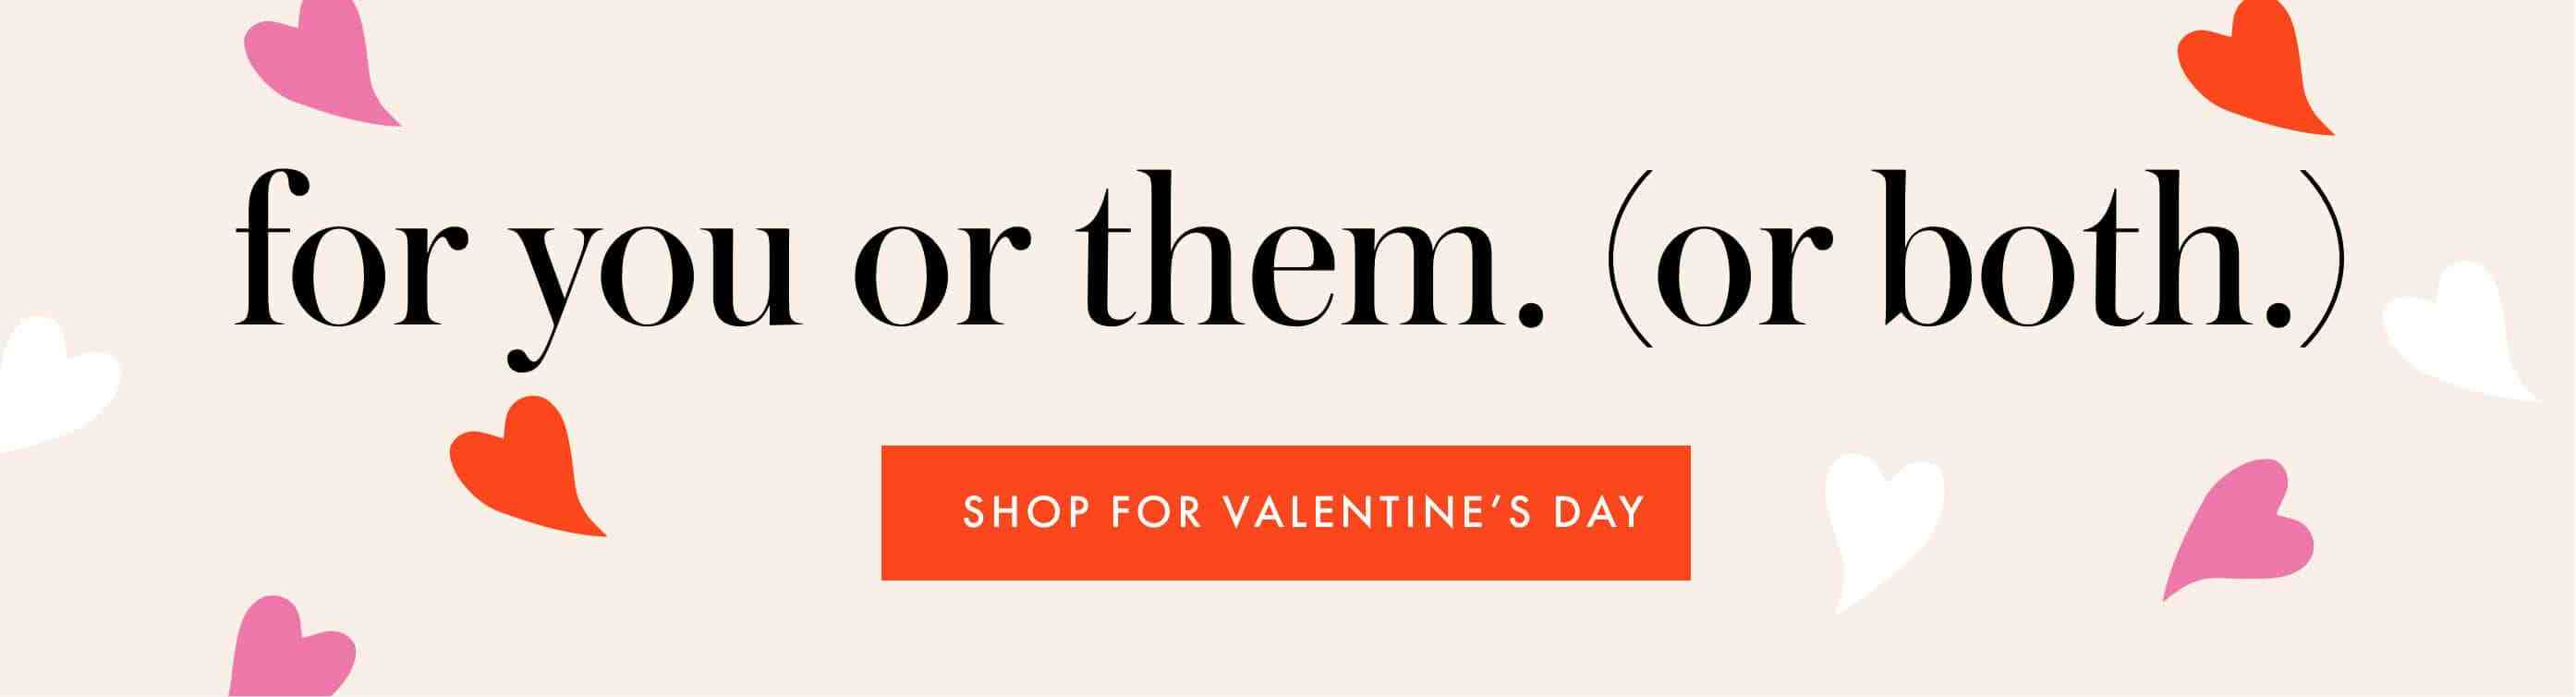 for you or them. (or both.) shop for valentine's day